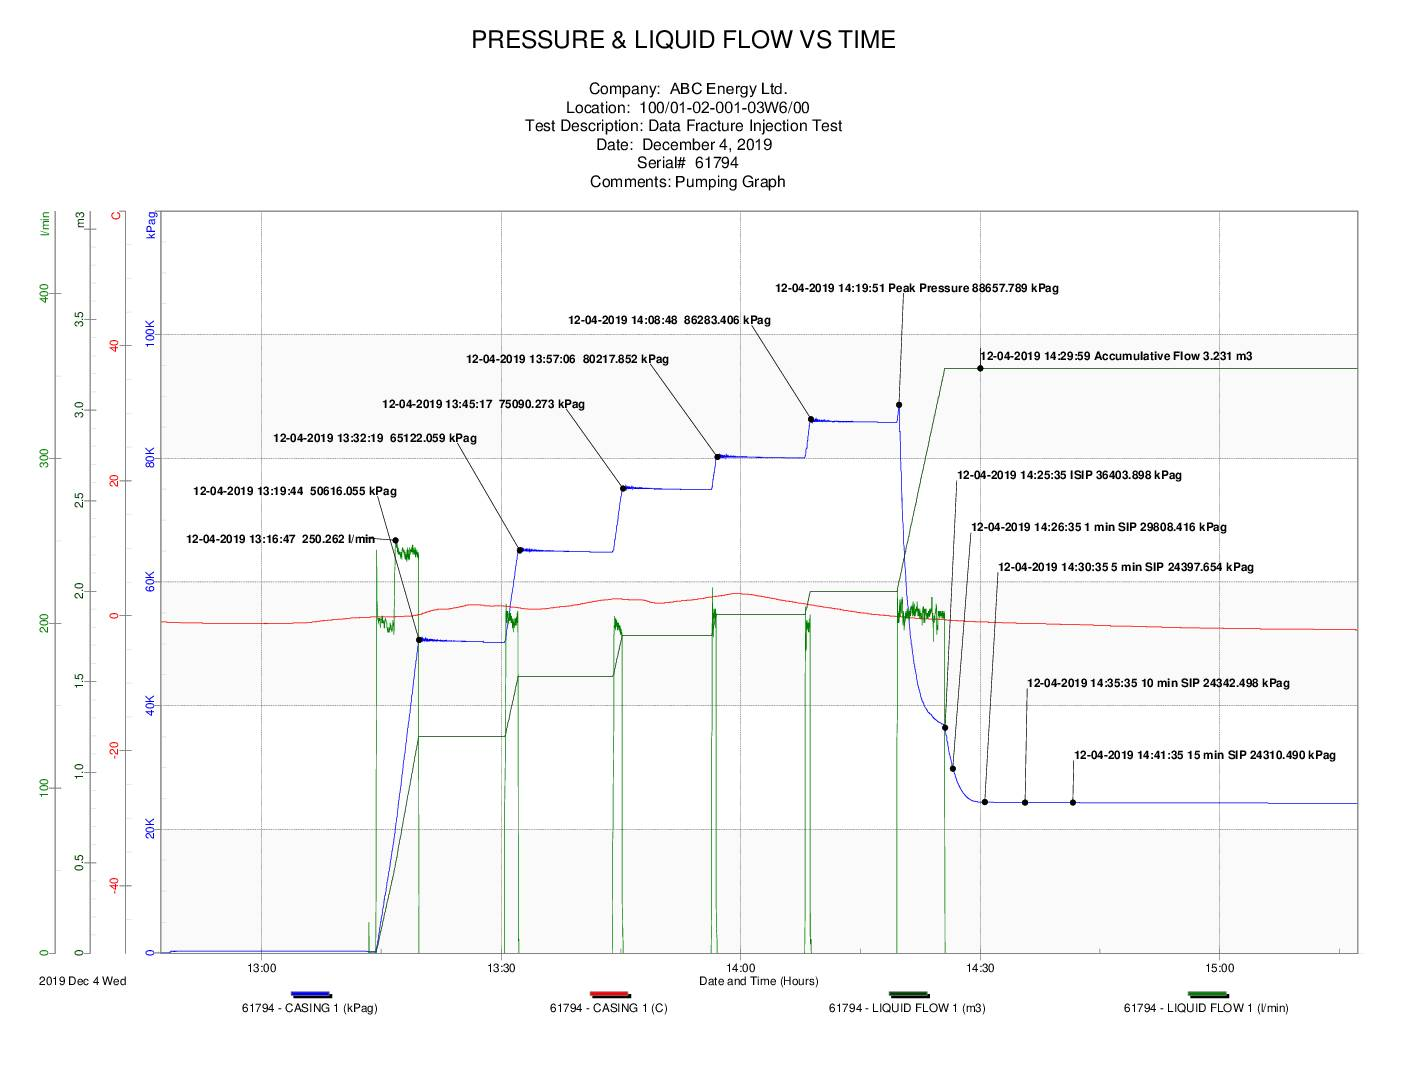 Data Fracture Injection Test Example Graph 2